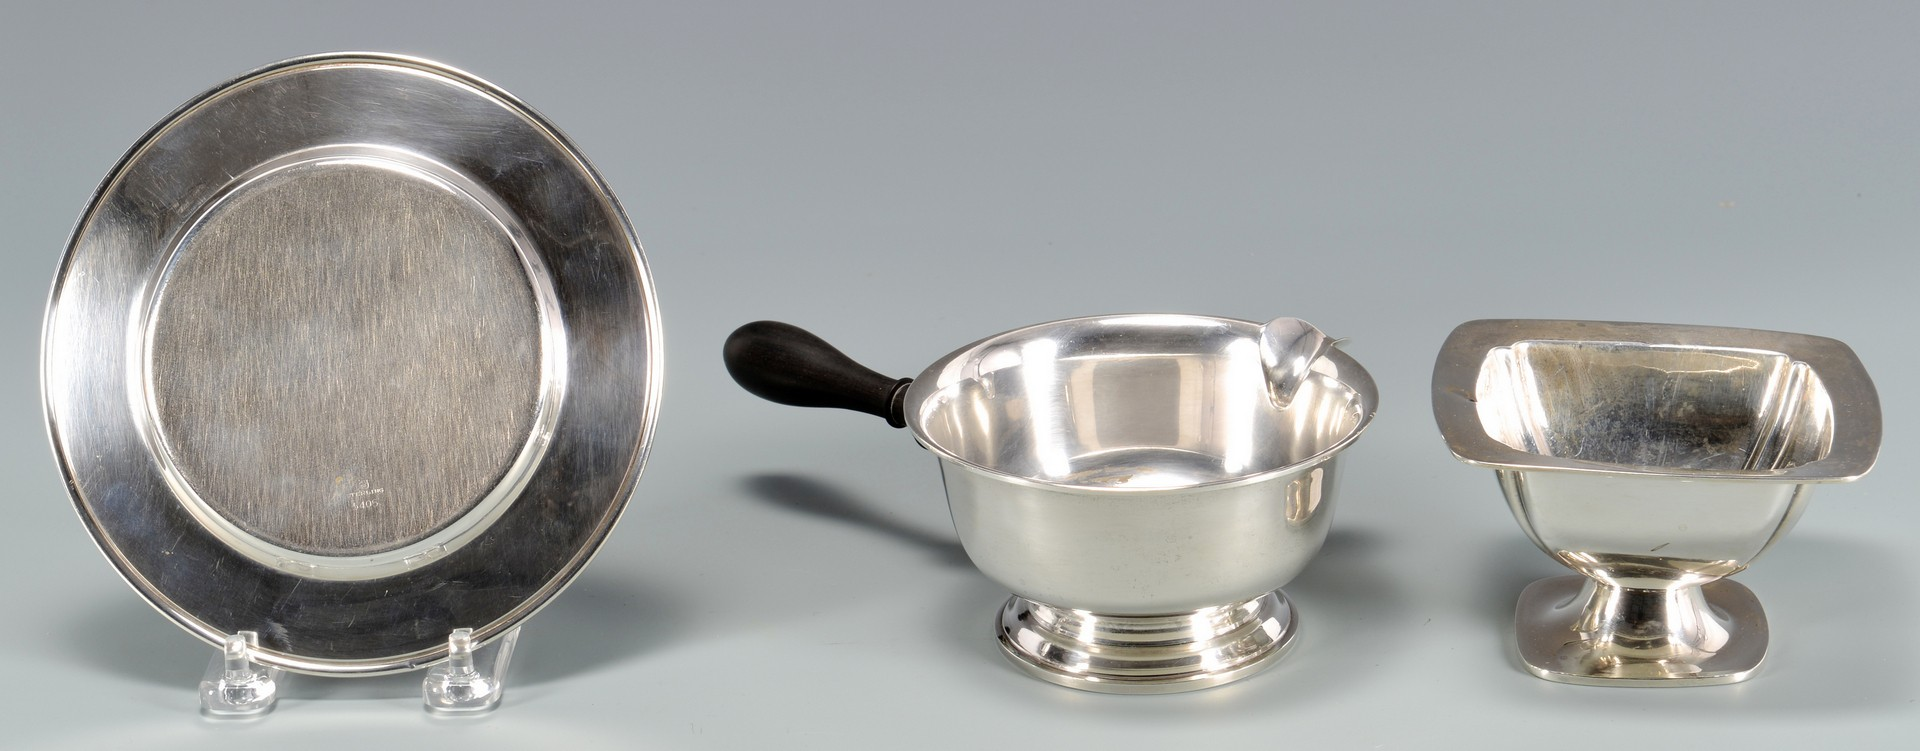 Lot 959: 5 Items Sterling Serving Pcs incl Kirk